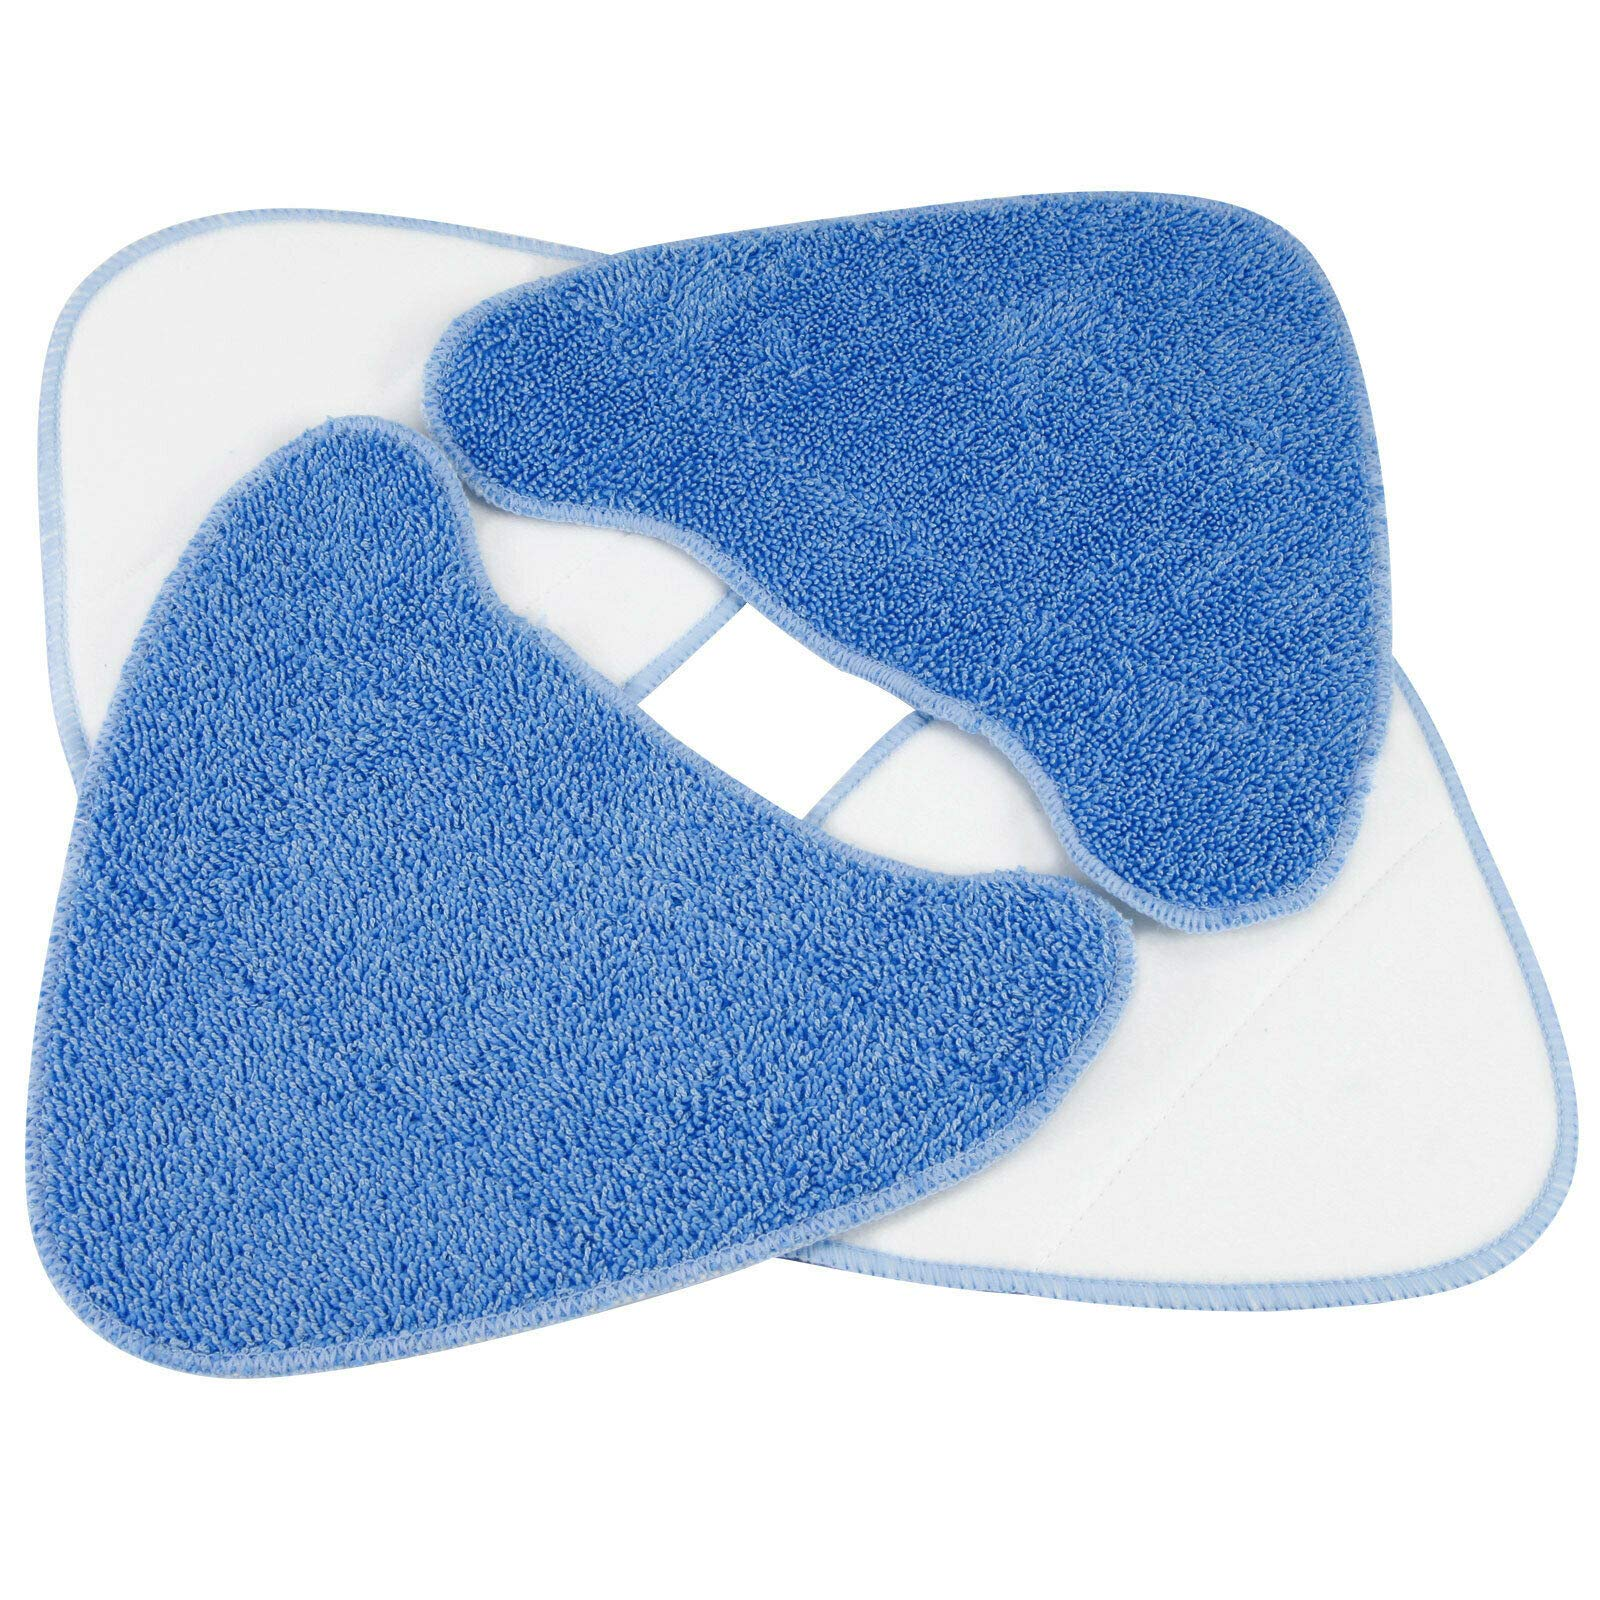 Lovely999 New Microfibre Steam Mop Washable Replacement Pads Cloth Pads to fit Vax Type 1 Vax Models Pack of 4